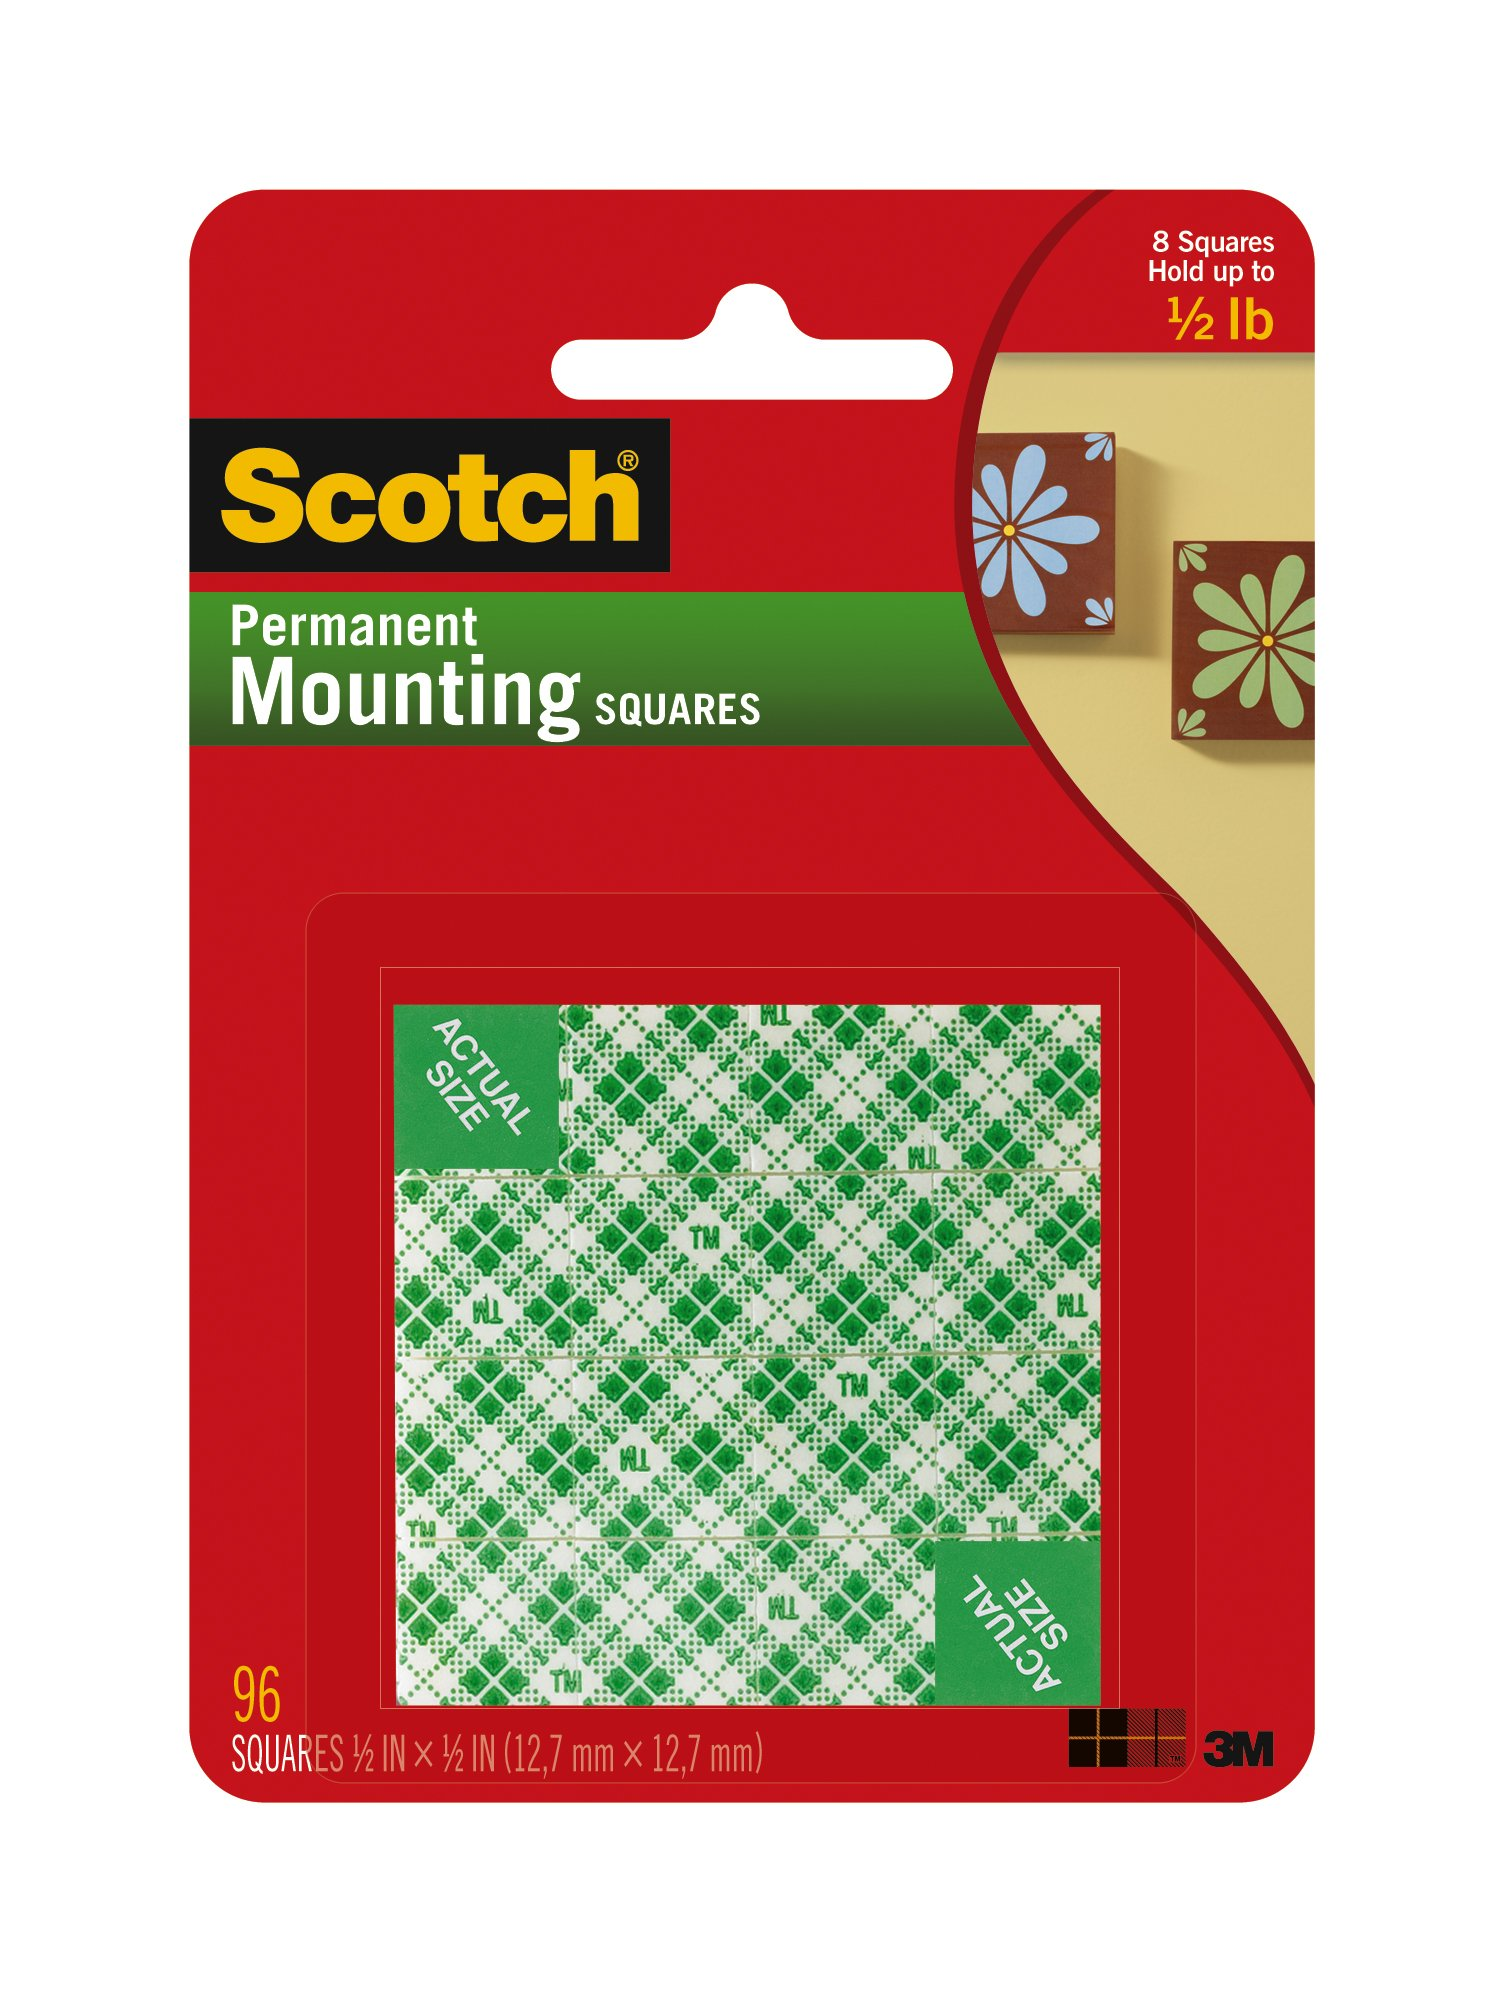 Scotch Indoor Mounting Squares, 1/2-inch x 1/2-inch, White, 96-Squares (111-SML)